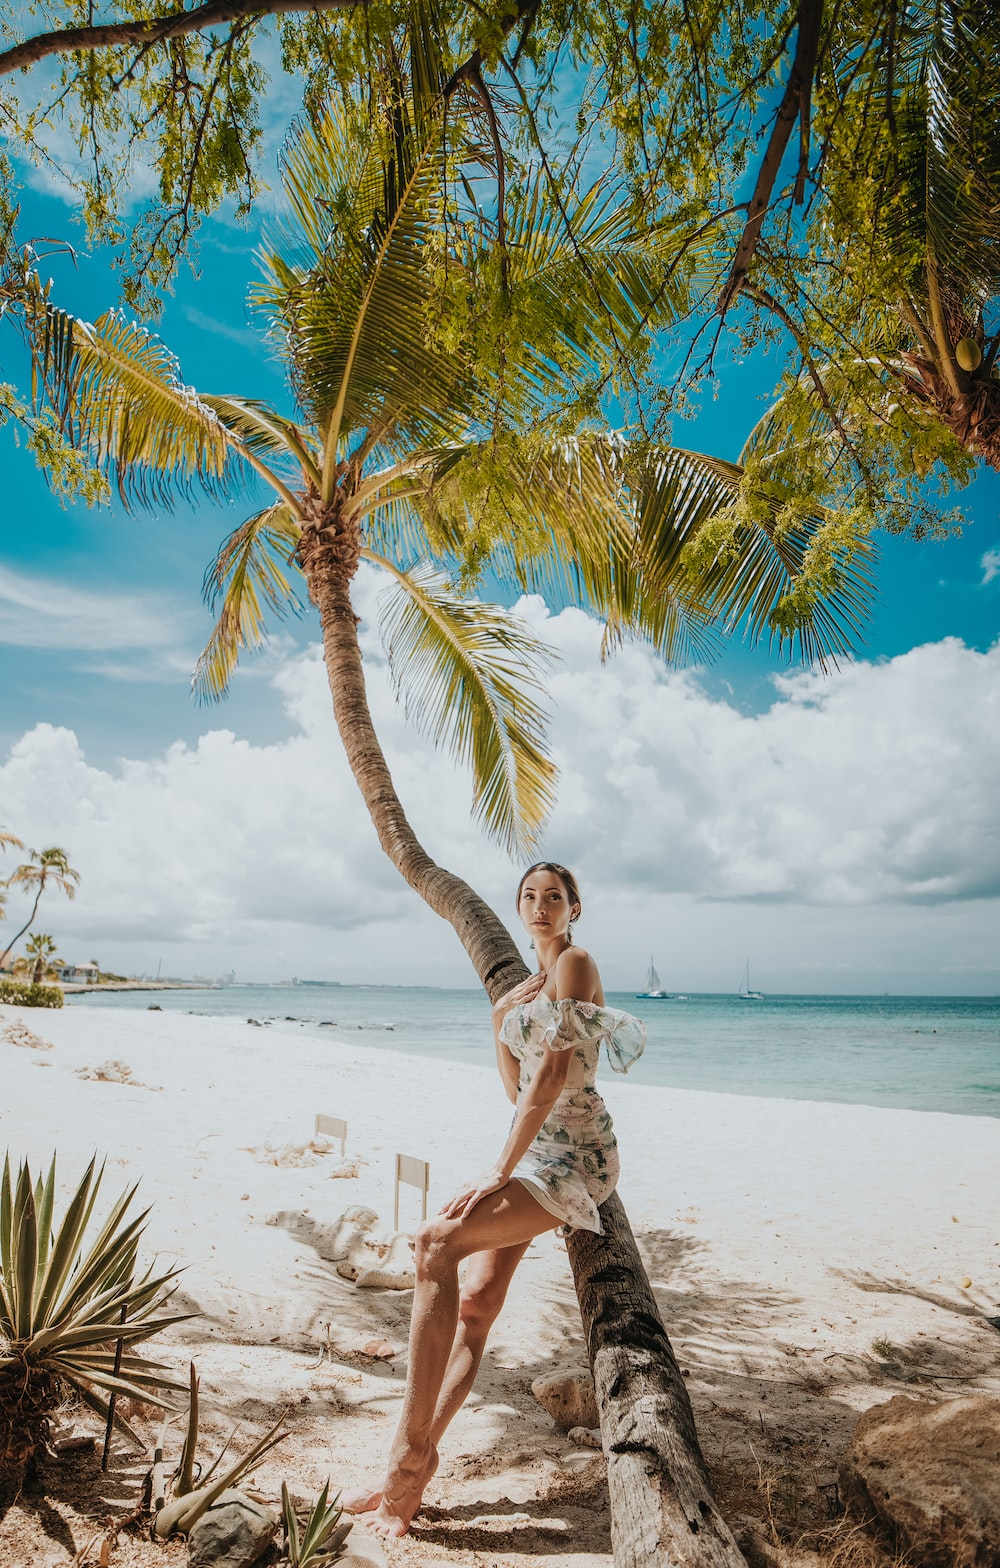 woman in white dress sitting on palm tree on beach during daytime